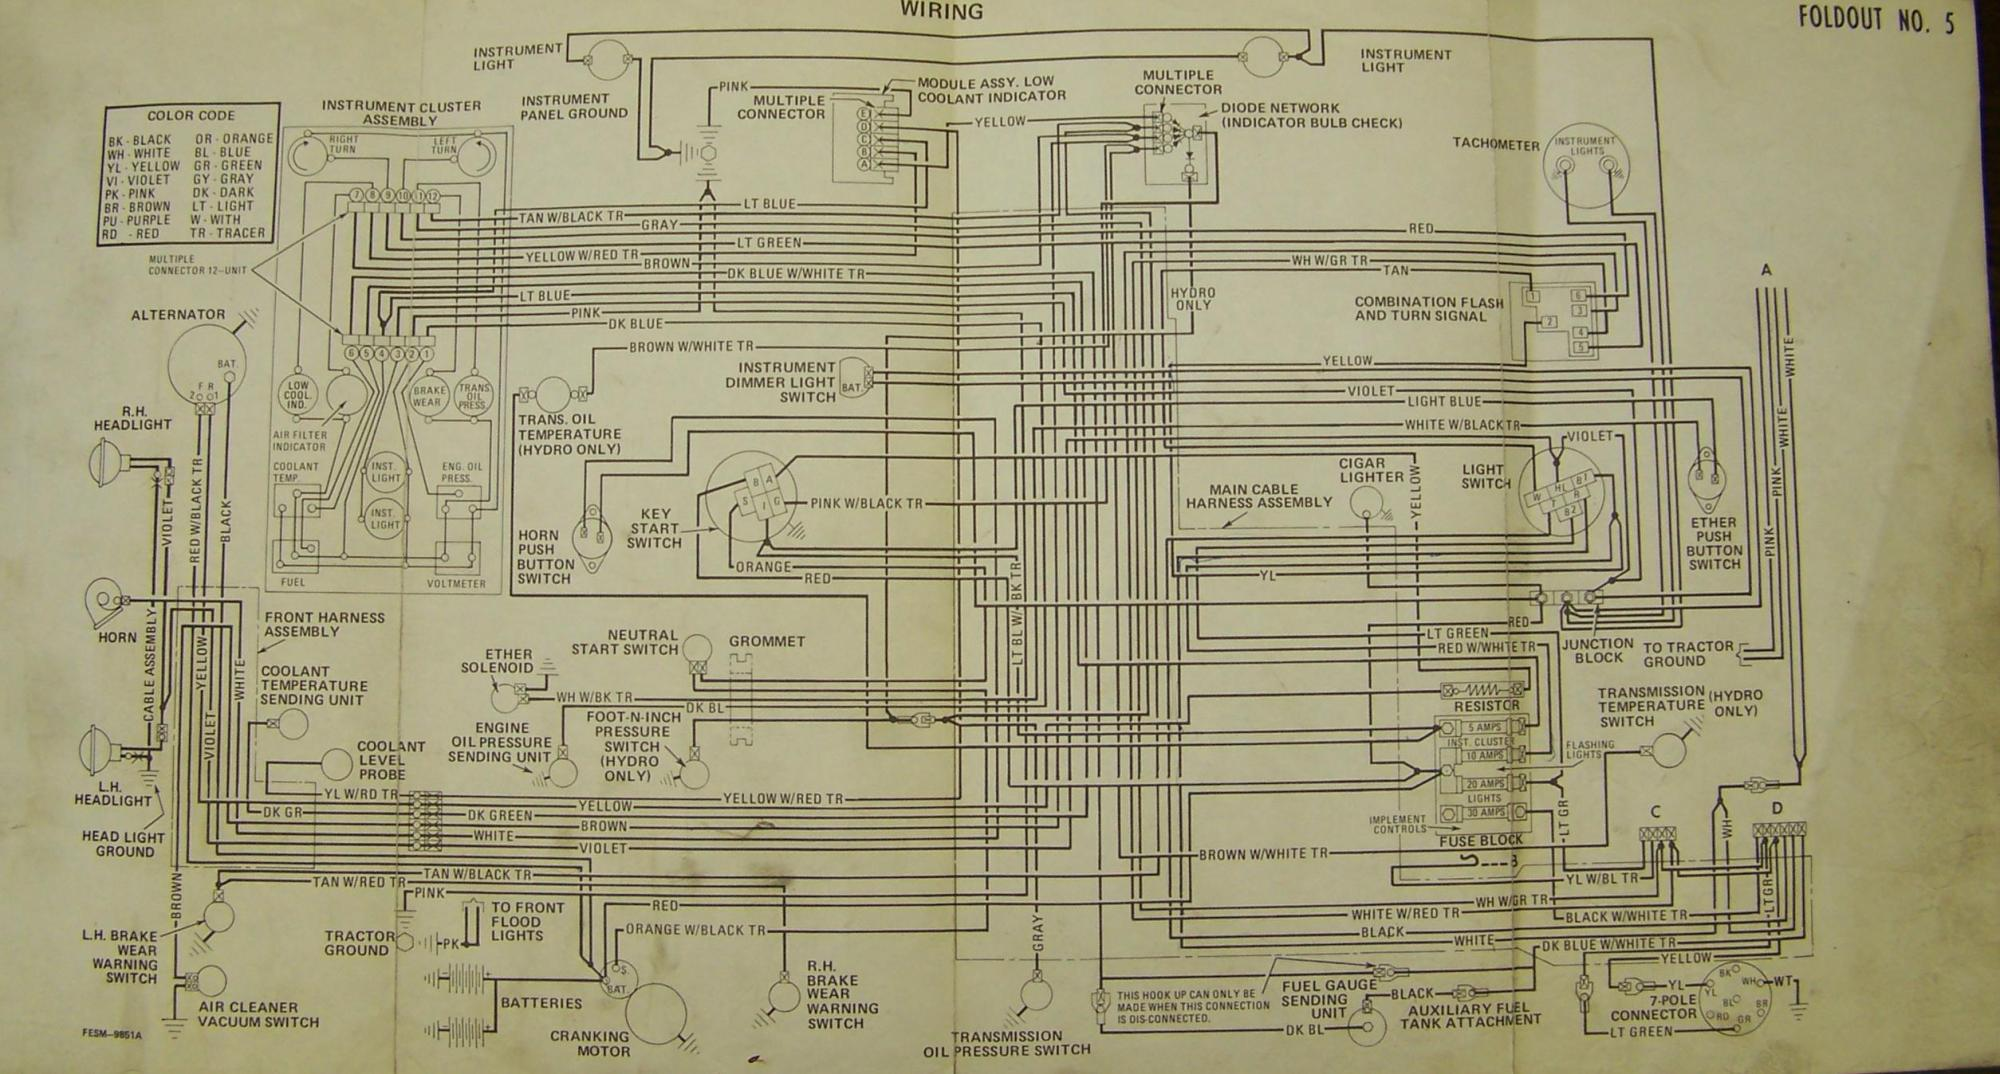 hight resolution of case ih wiring schematic wiring diagram case ih 1660 wiring diagram case ih 1660 wiring schematic